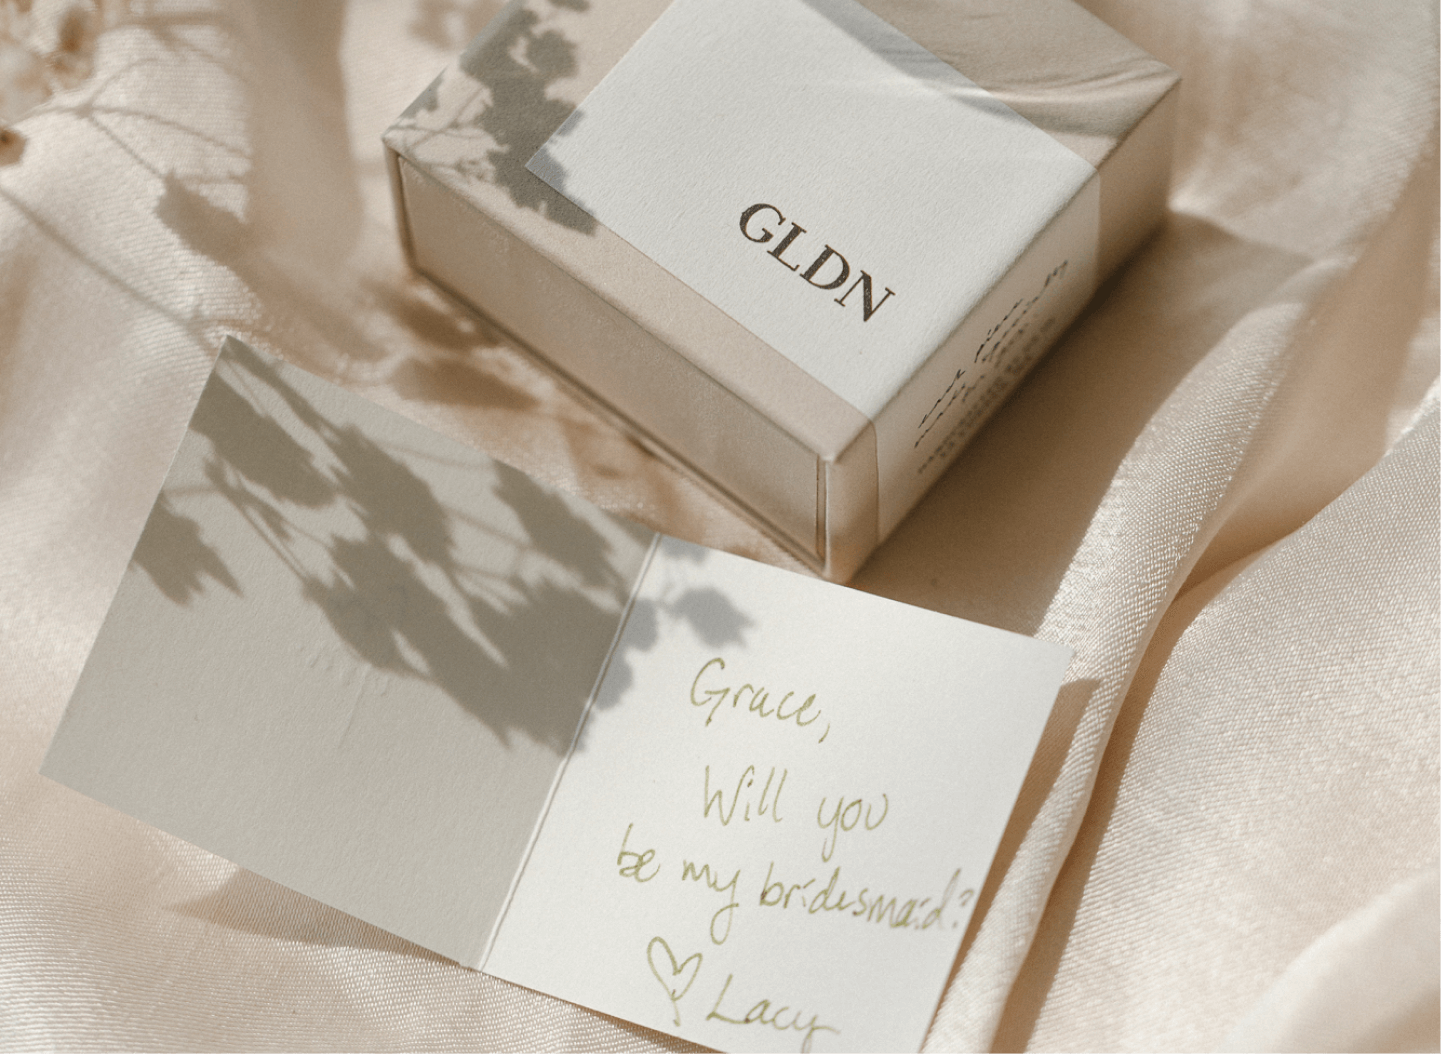 GLDN Packaging